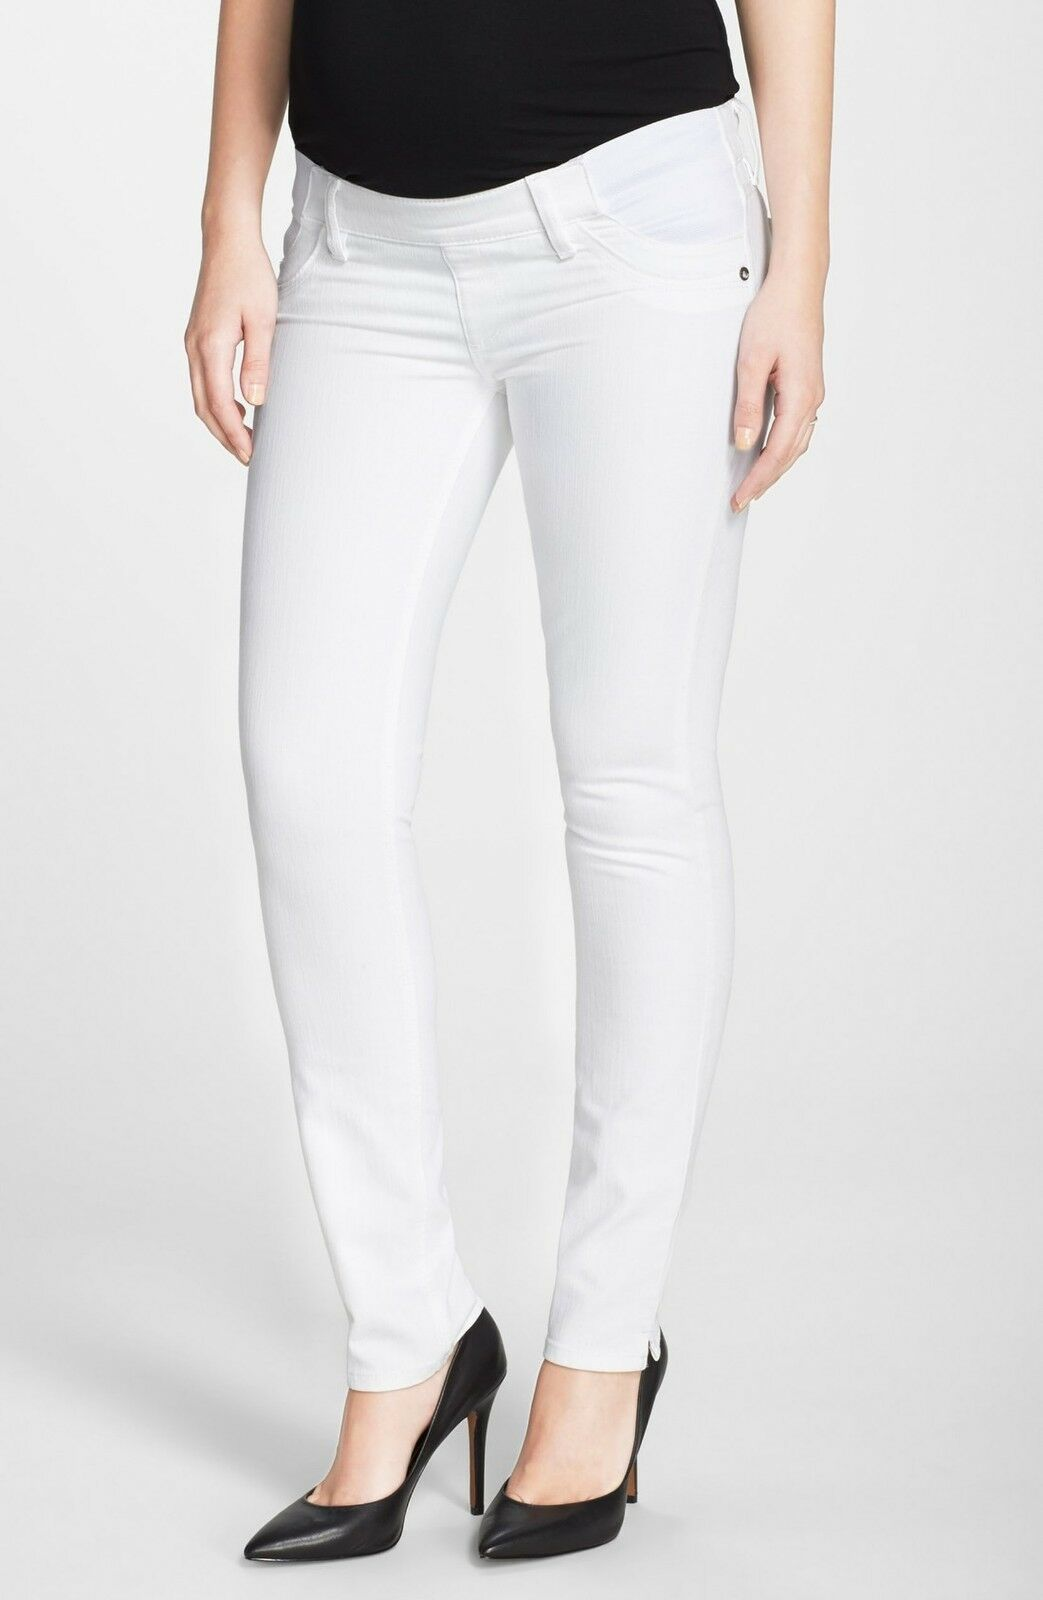 DL1961 Angel Ankle Cigarette Maternity Jean in Lilly White - Size 32